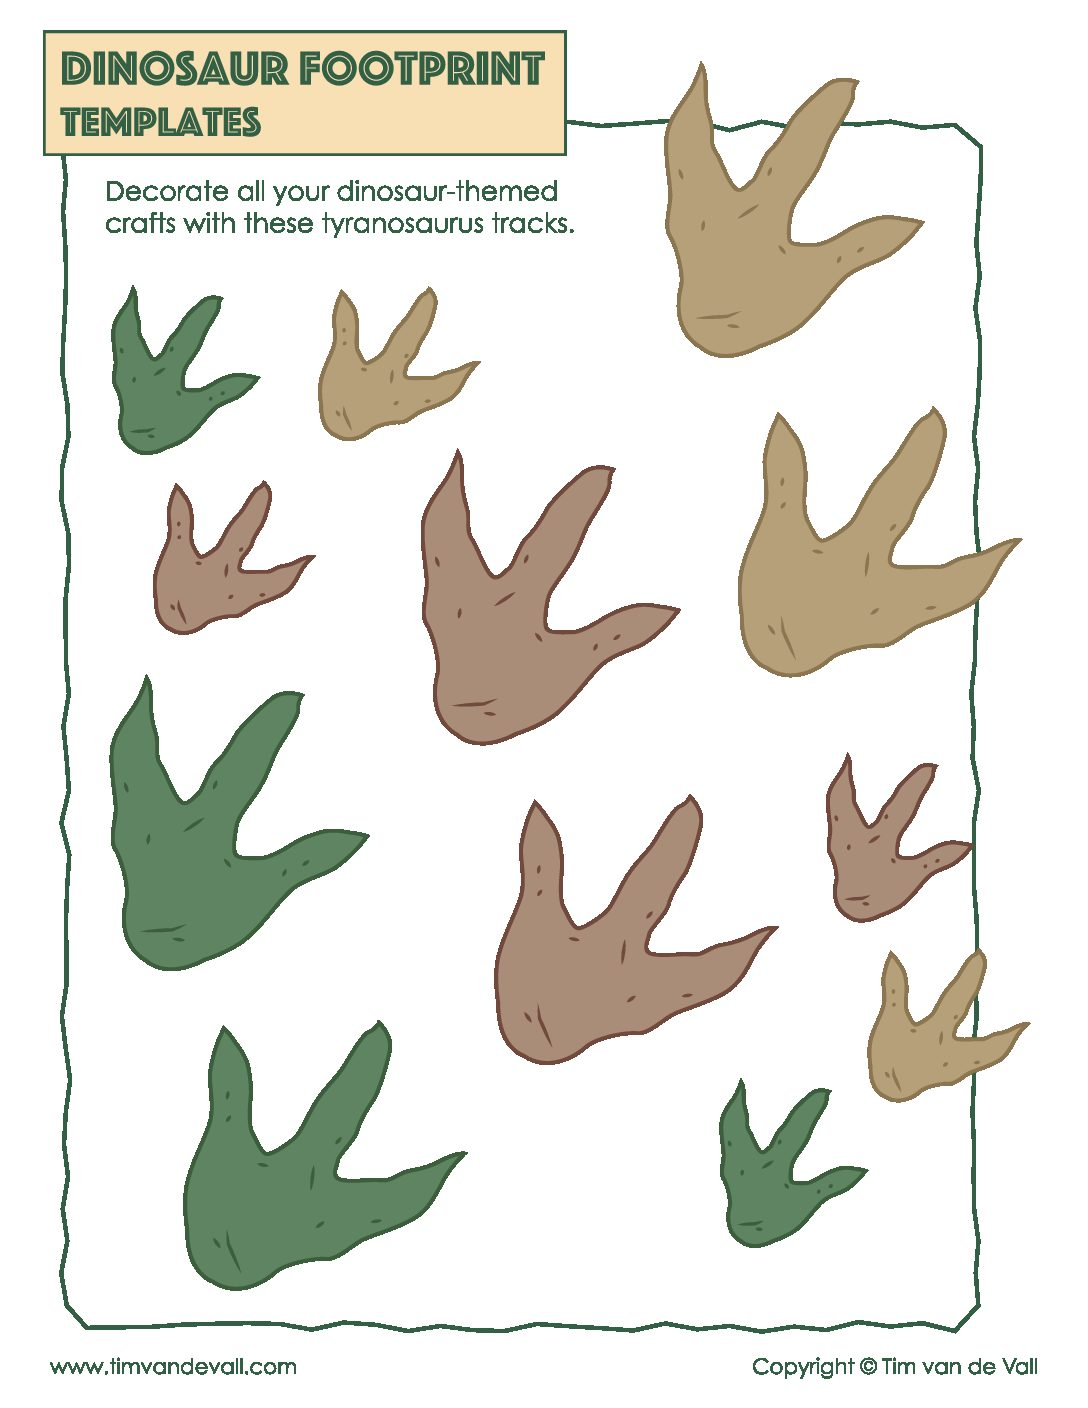 Dinosaur Footprint Templates